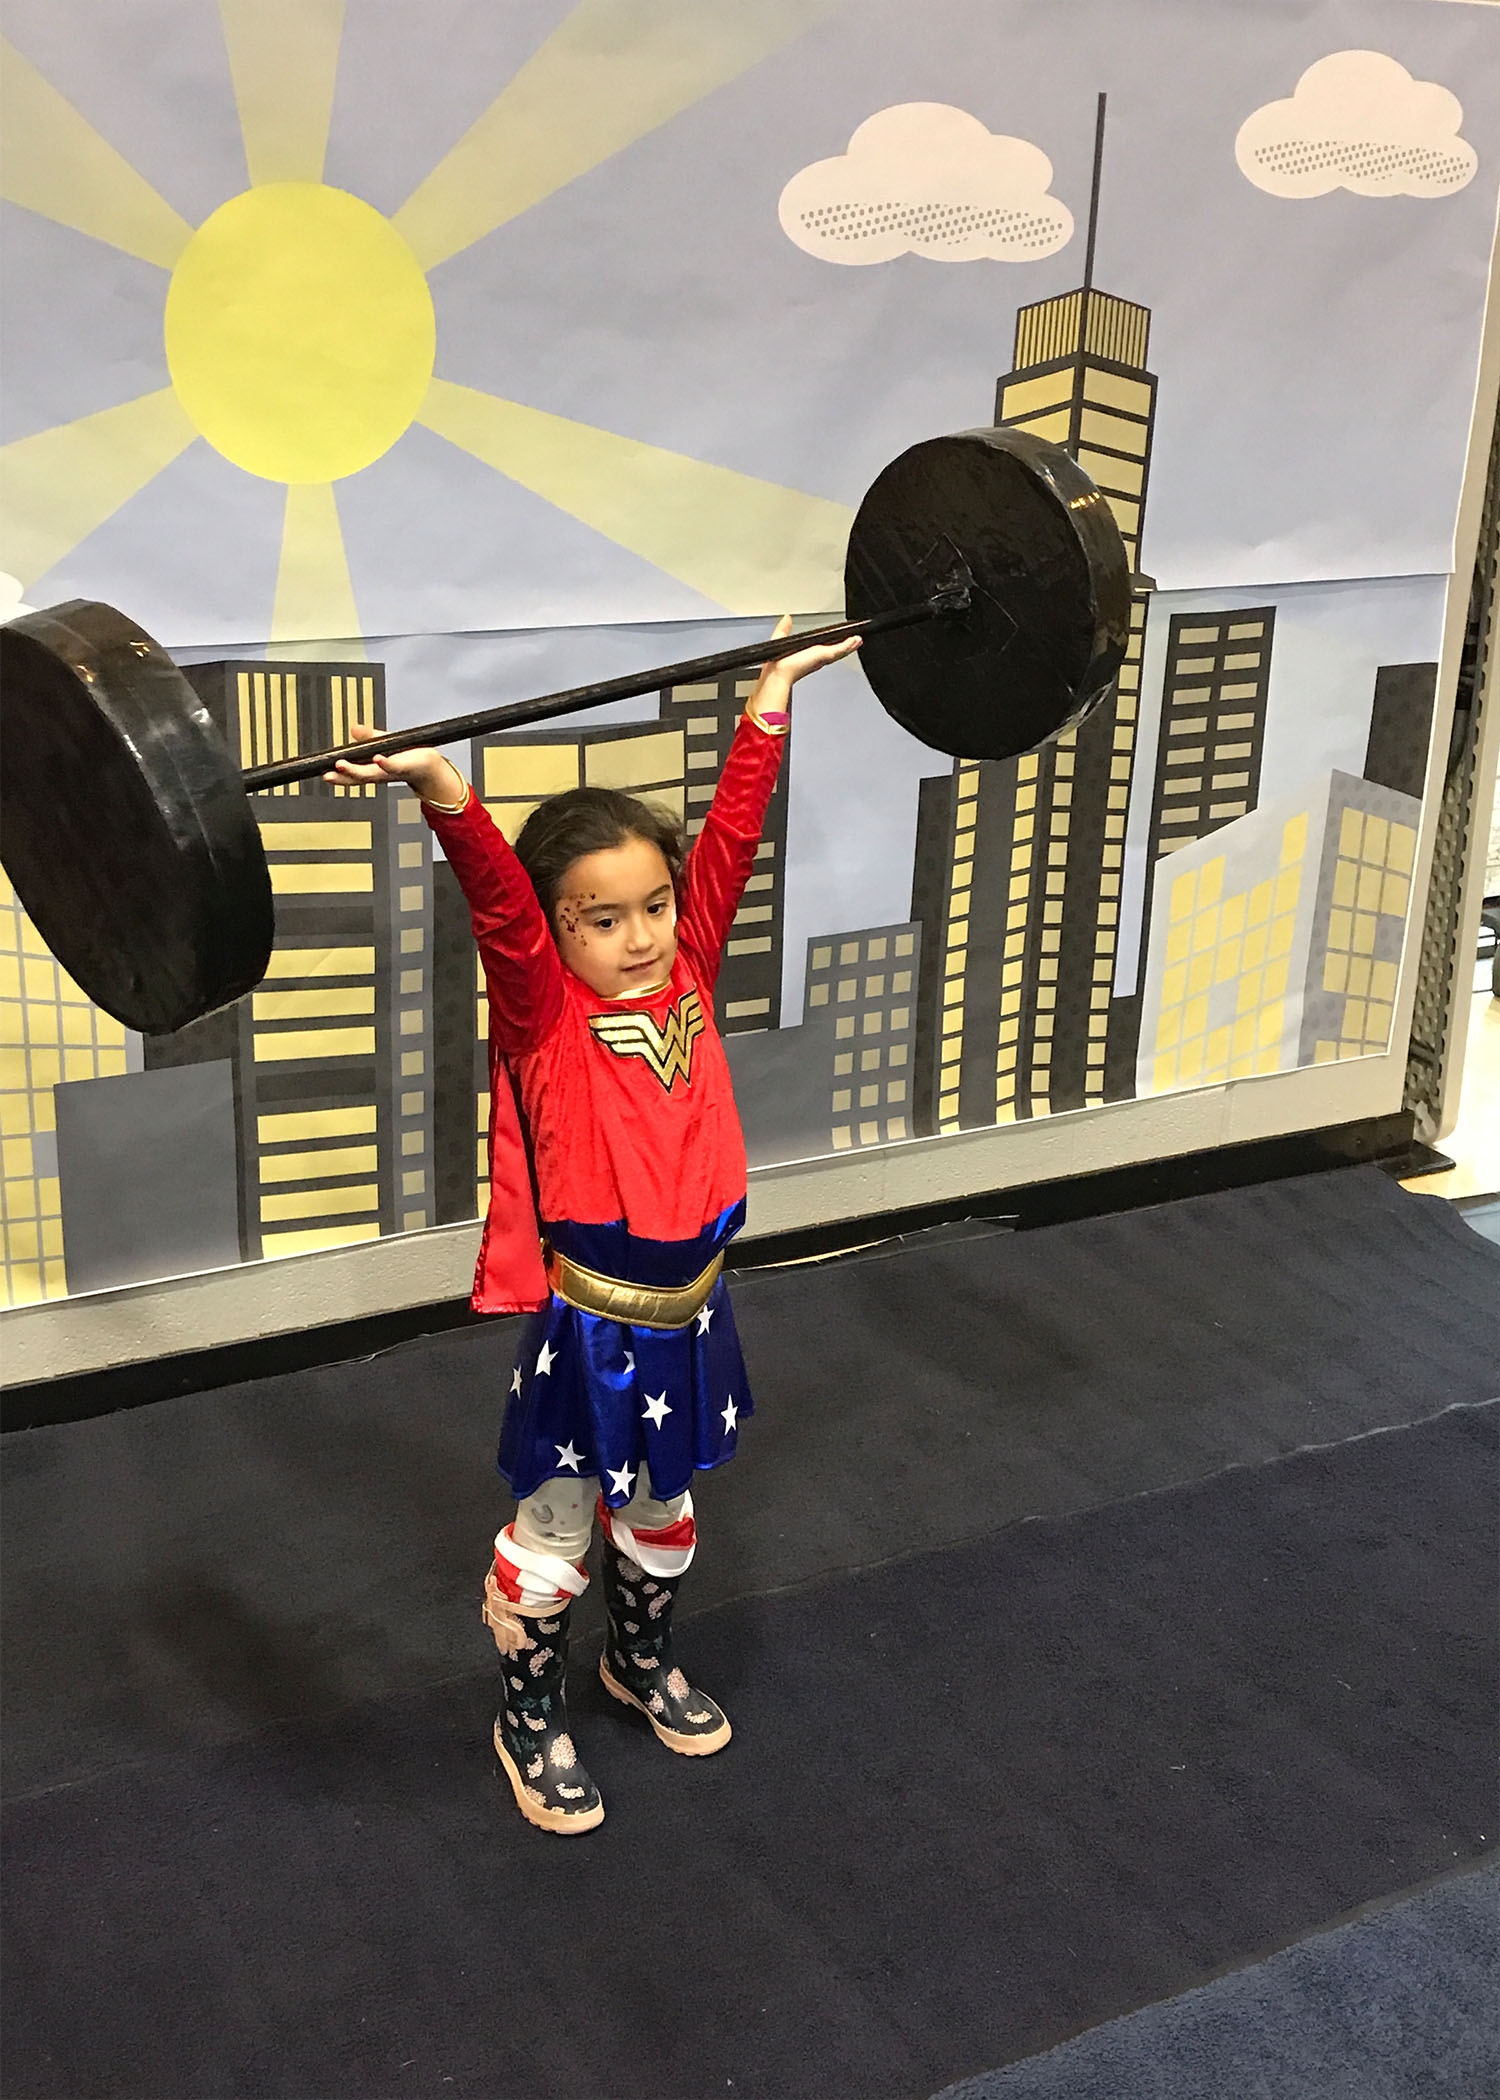 Young WonderGirl lifting weight high above her head